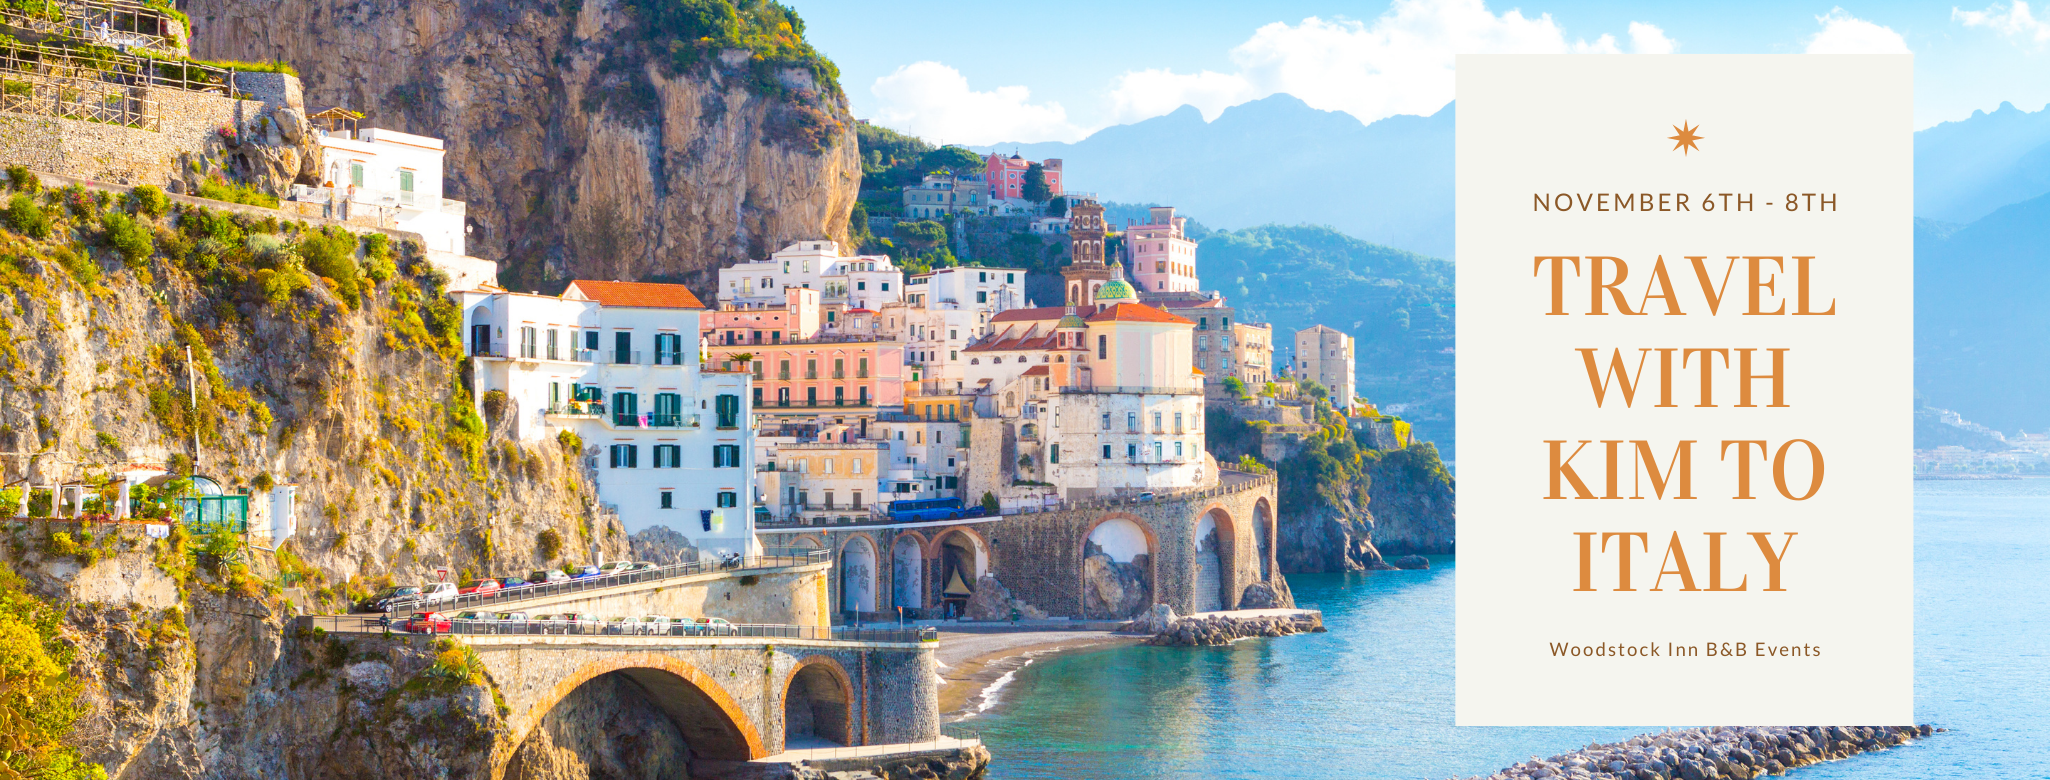 WI-Italy-travel-event-fb-cover